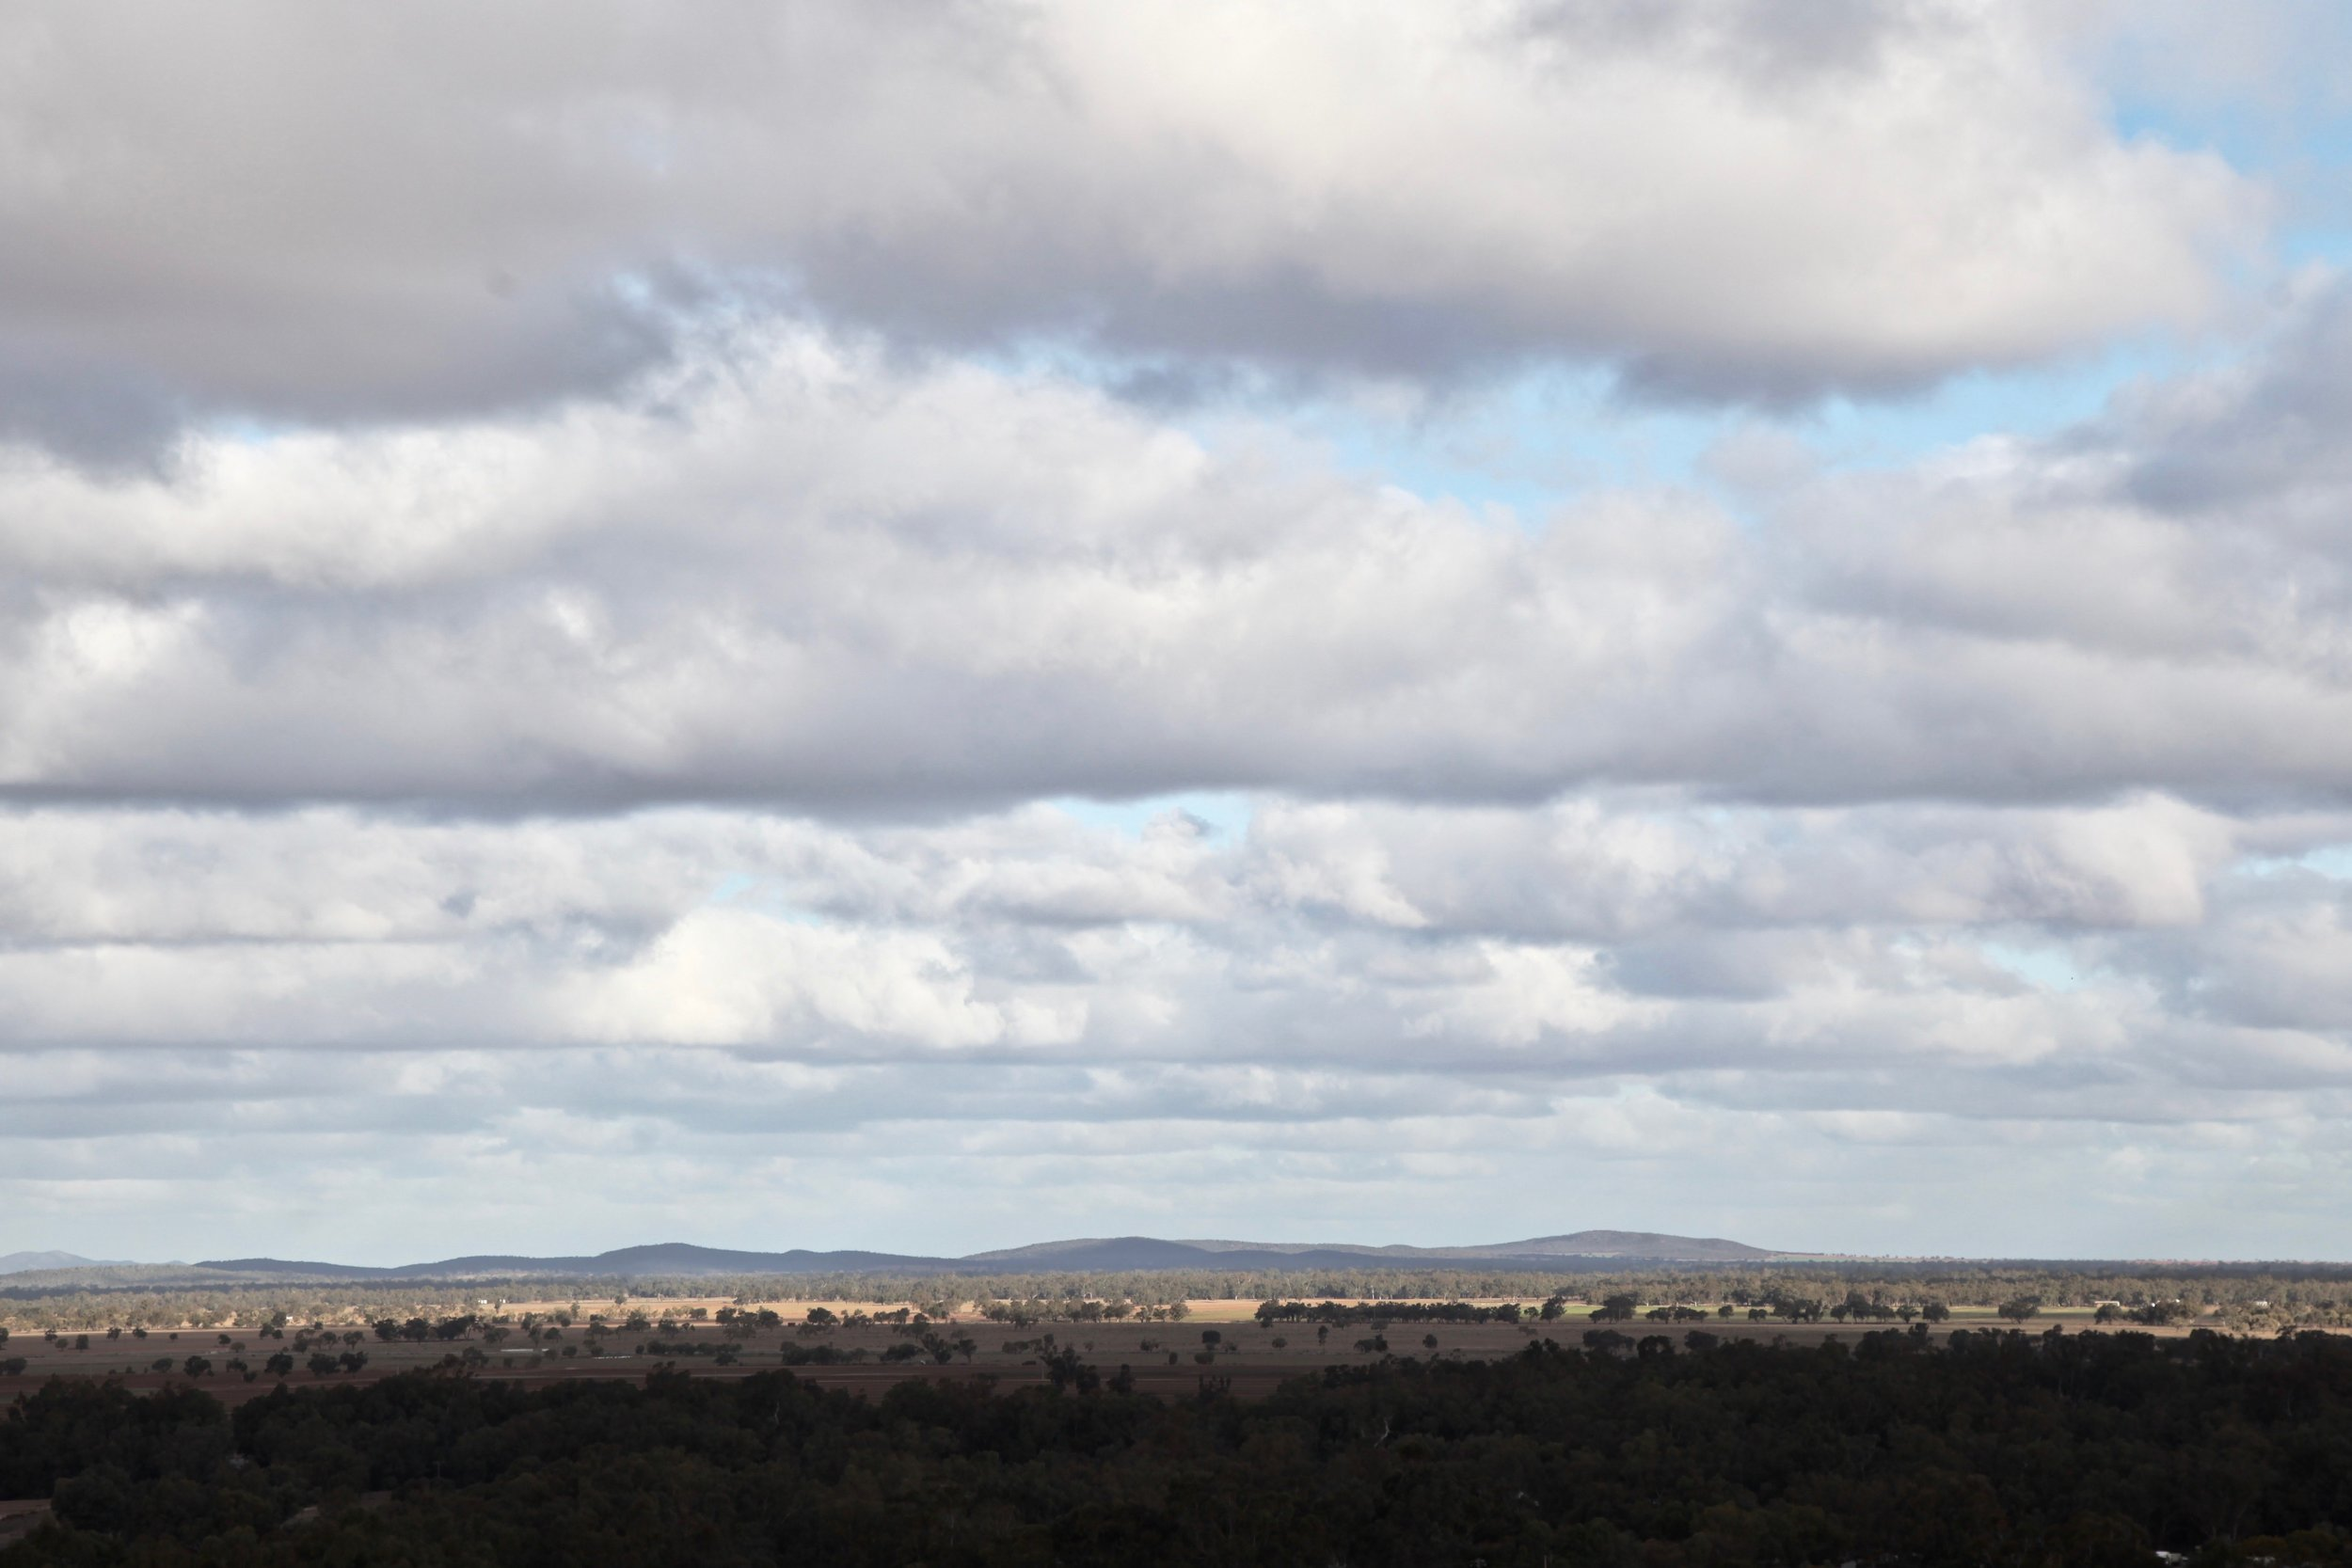 View from Reservoir Hill Lookout on Brady Street in Condobolin.